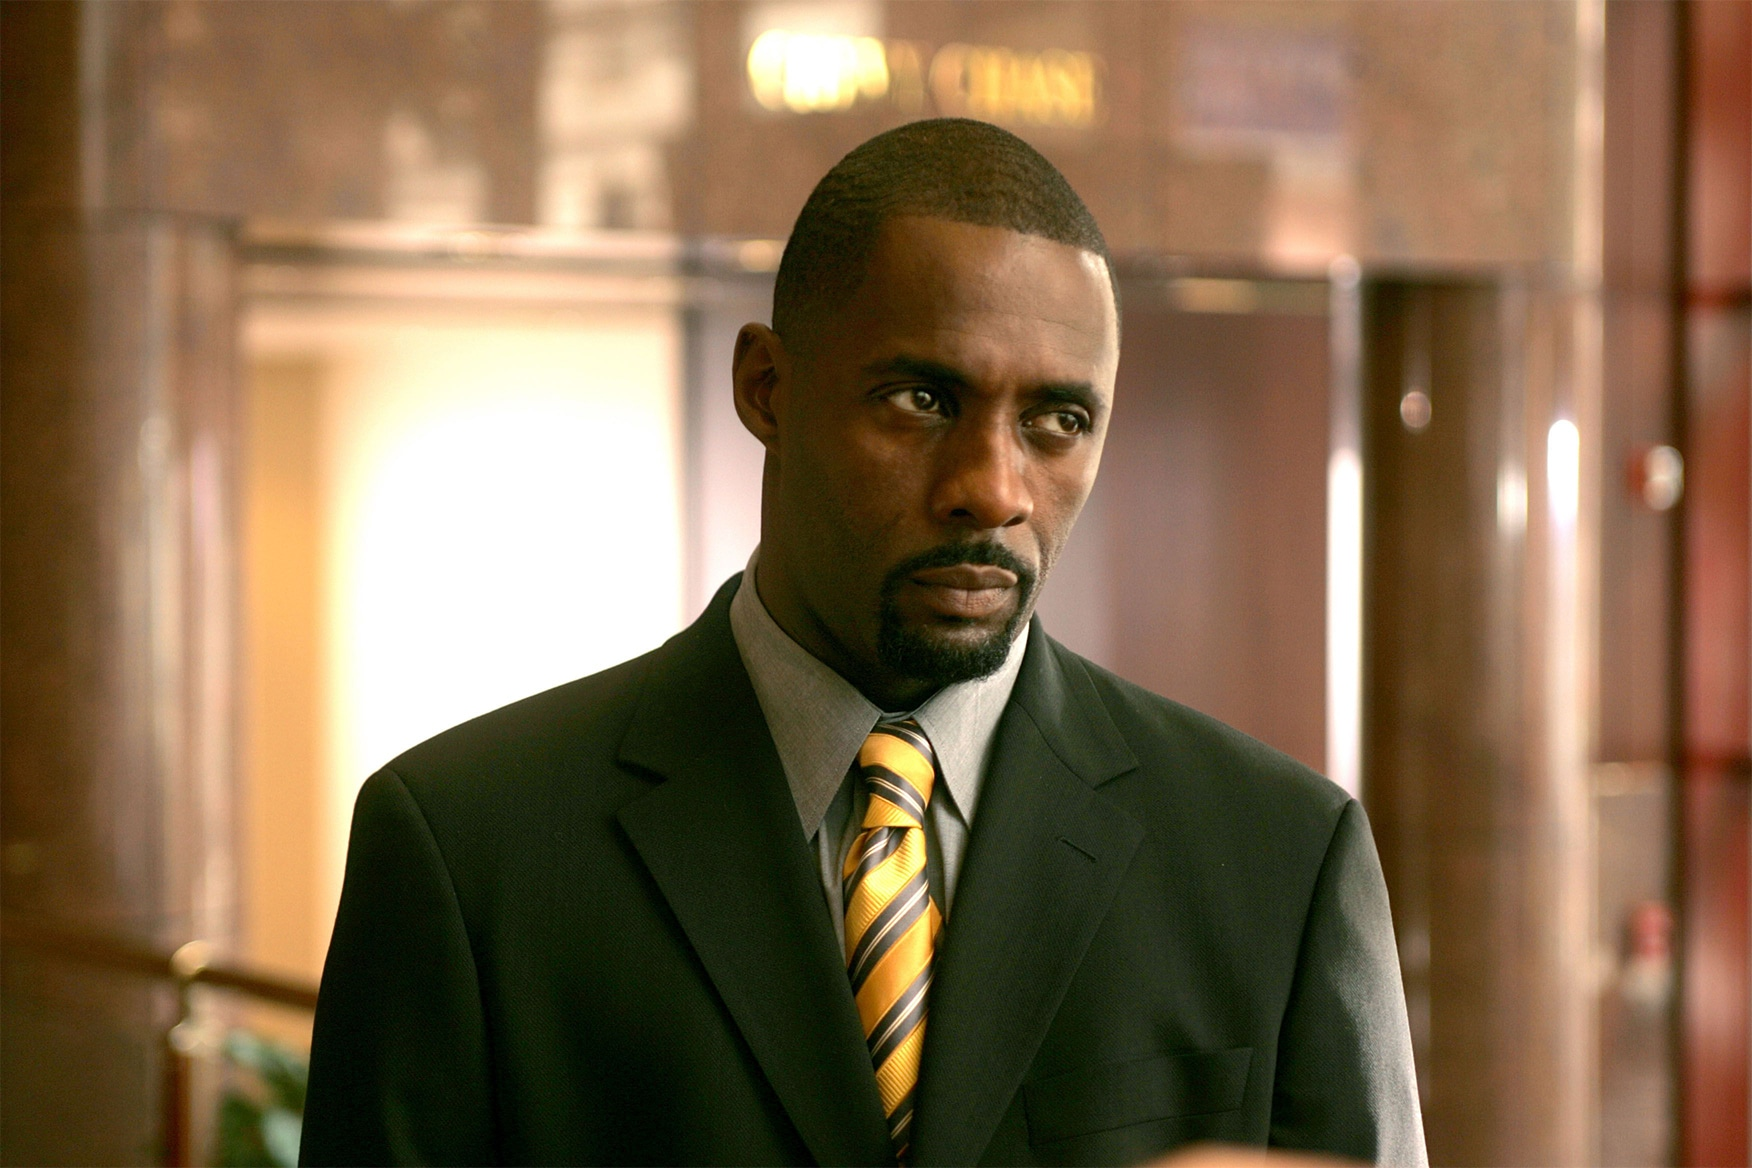 Idris Elba is a universally beloved actor that Hollywood struggles to cast effectively in films, yet The Suicide Squad understands him, The Wire